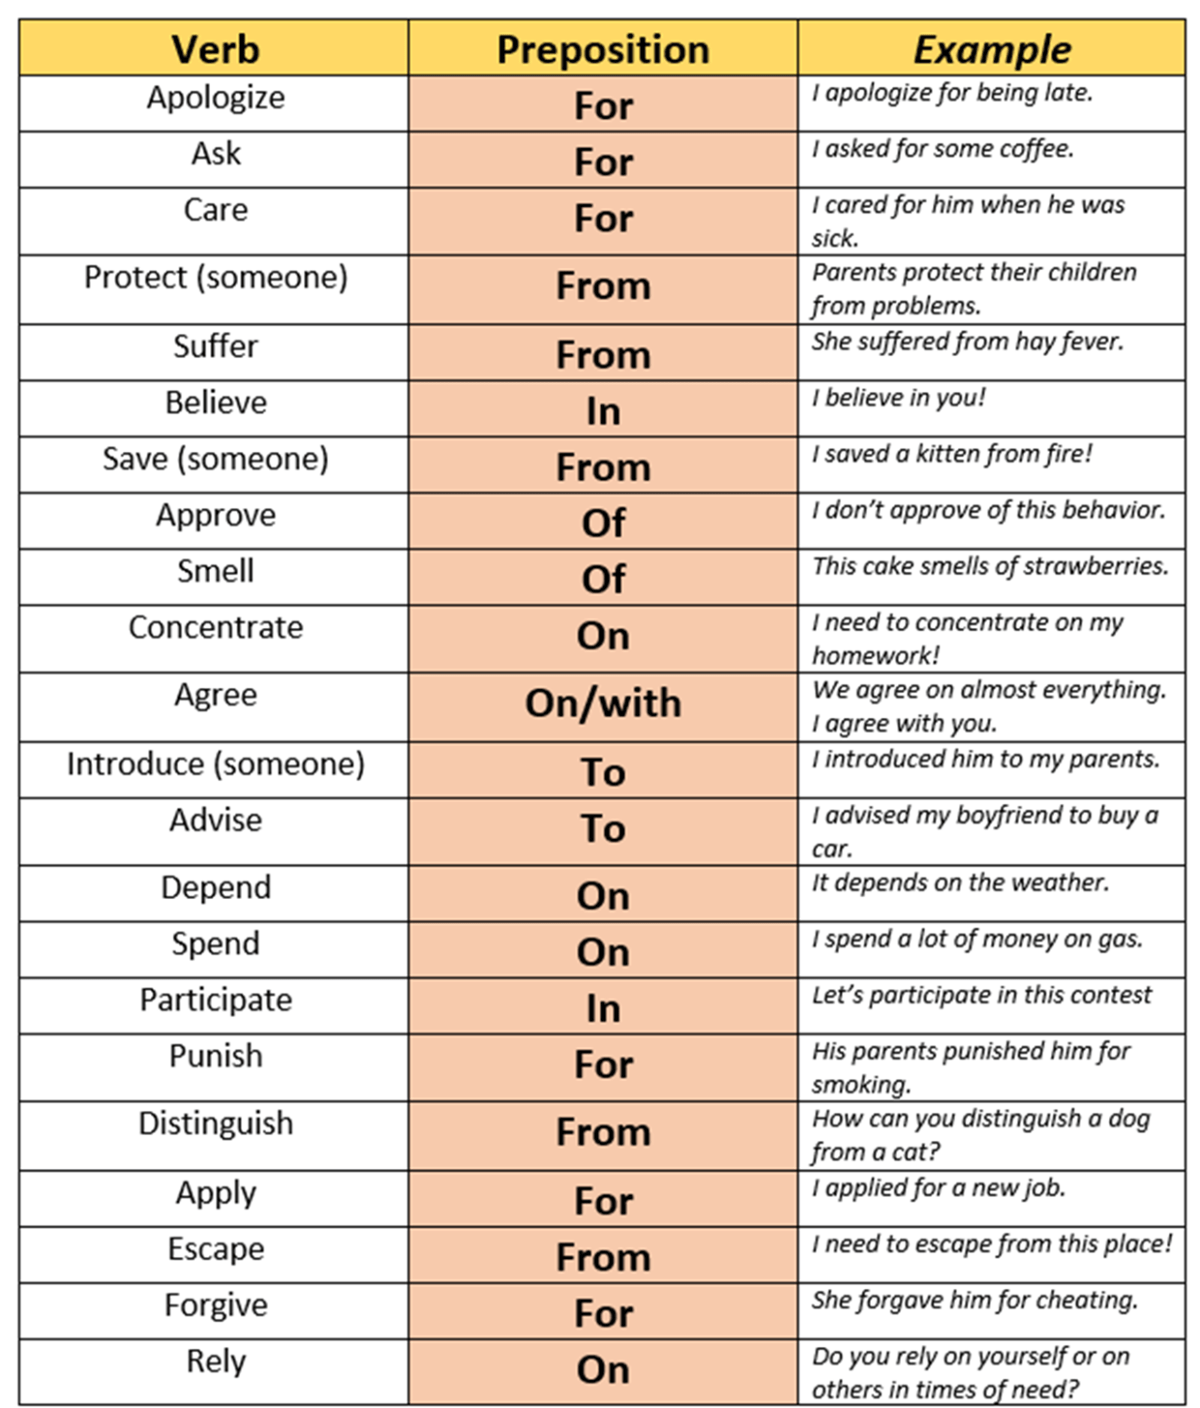 20 Helpful English Collocations Verbs Followed By